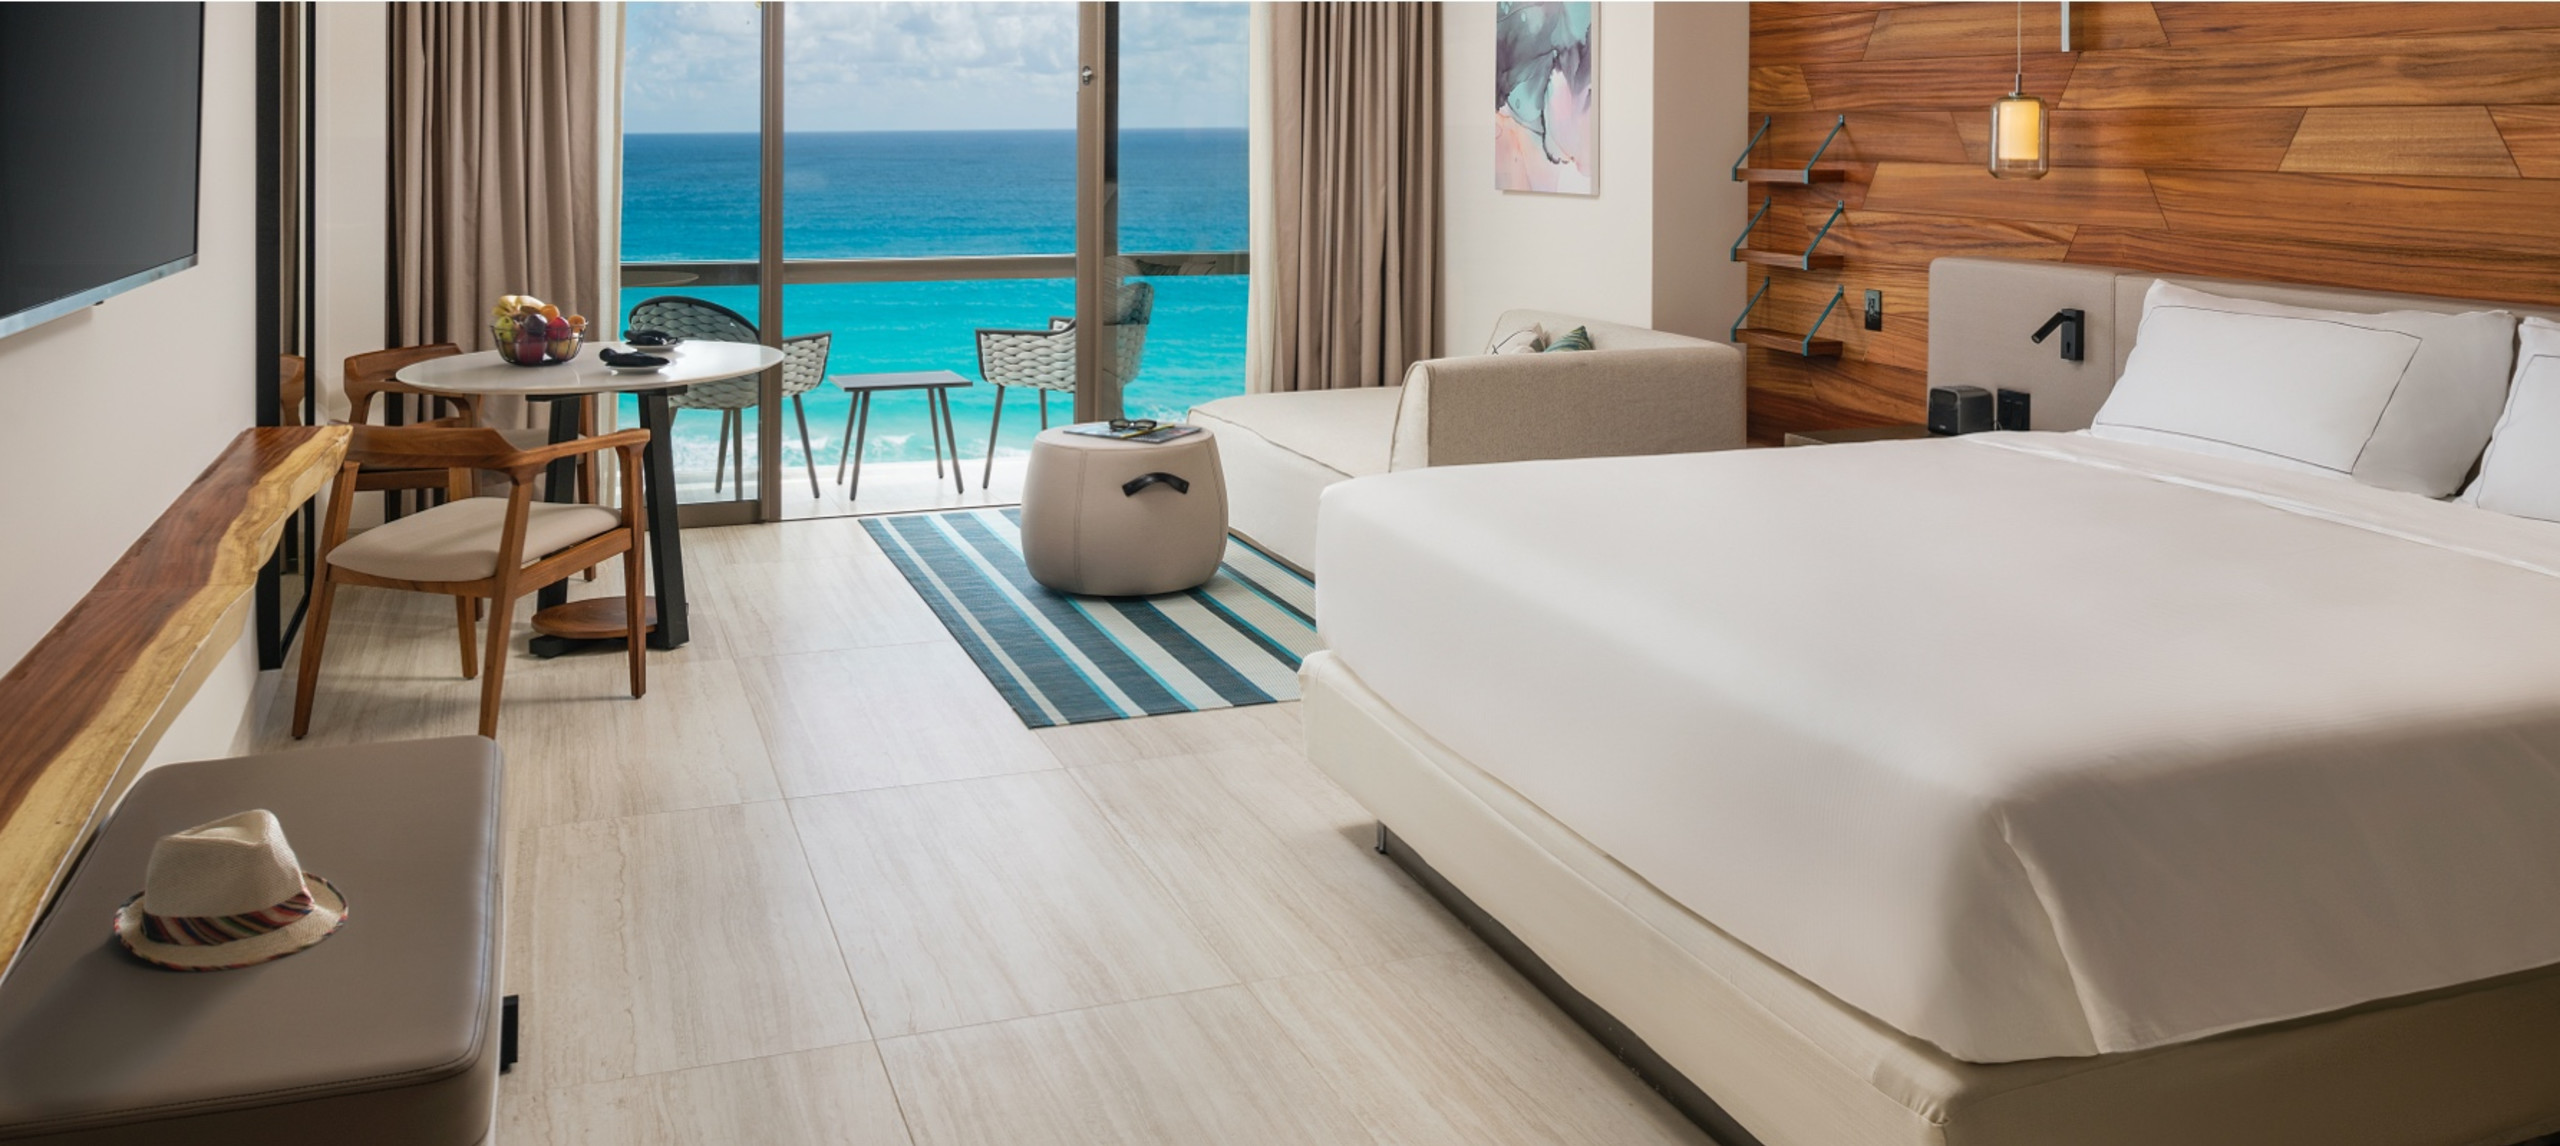 Room with oceanfront view